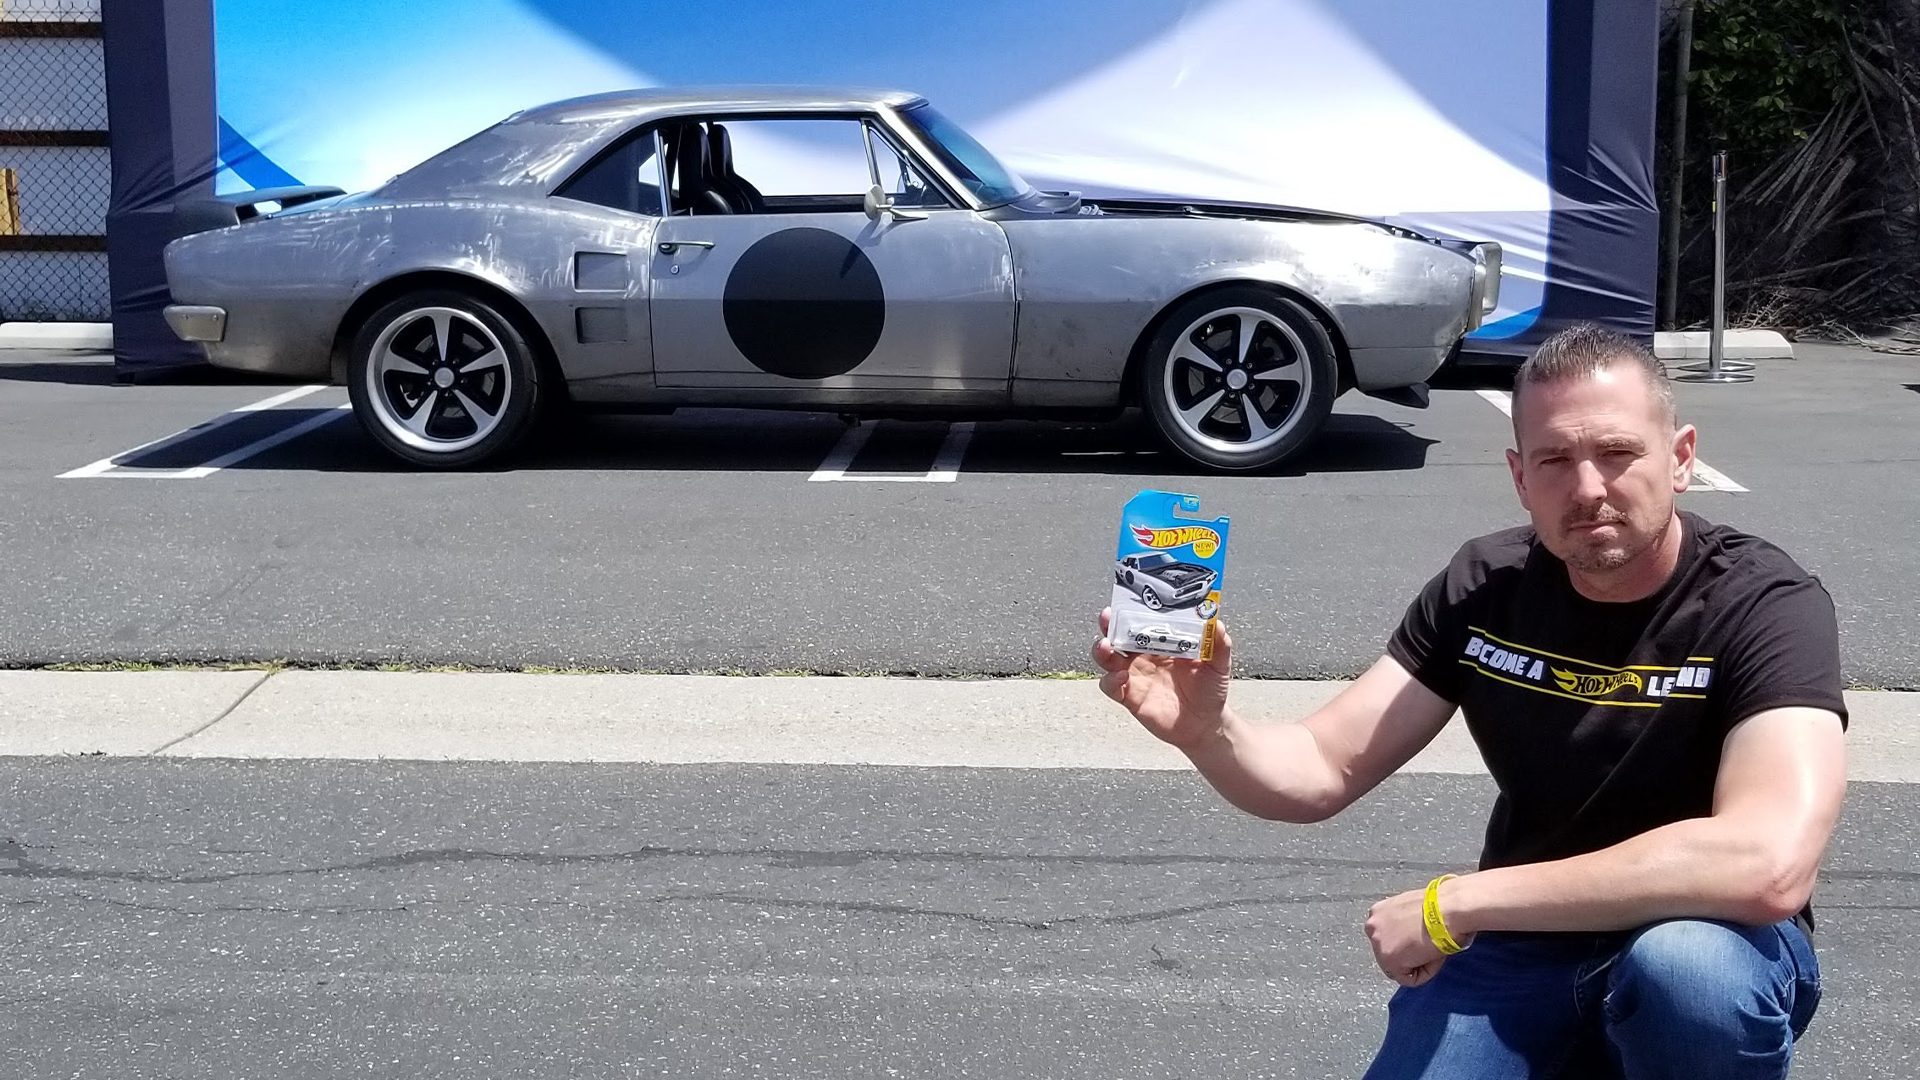 Hot Wheels Designer, Brendon Vetuskey with 1967 Pontiac Firebird